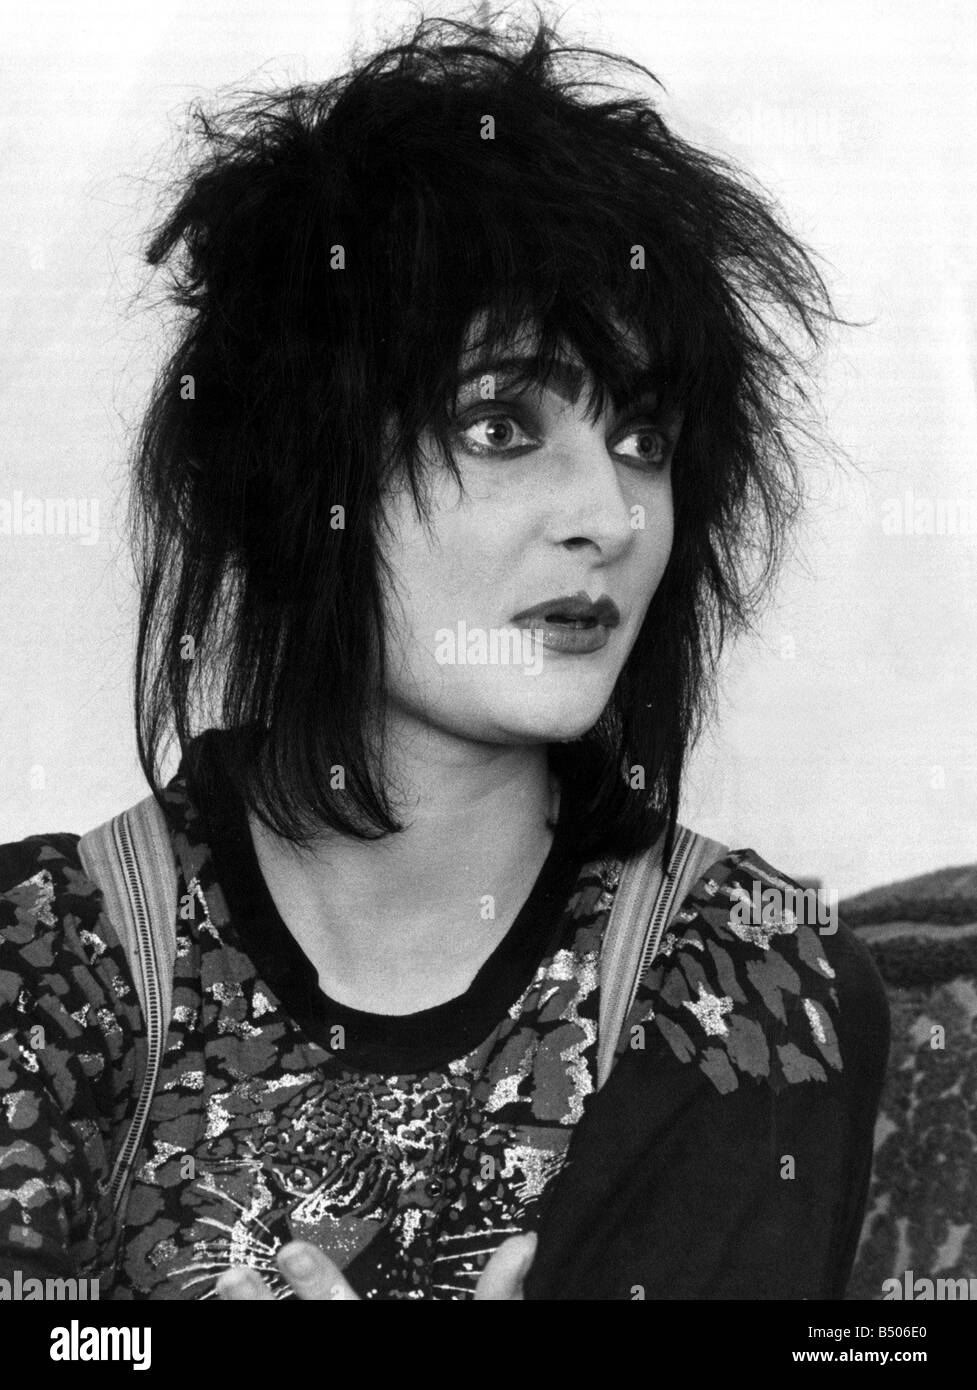 Siouxsie & The Banshees - The Thorn EP